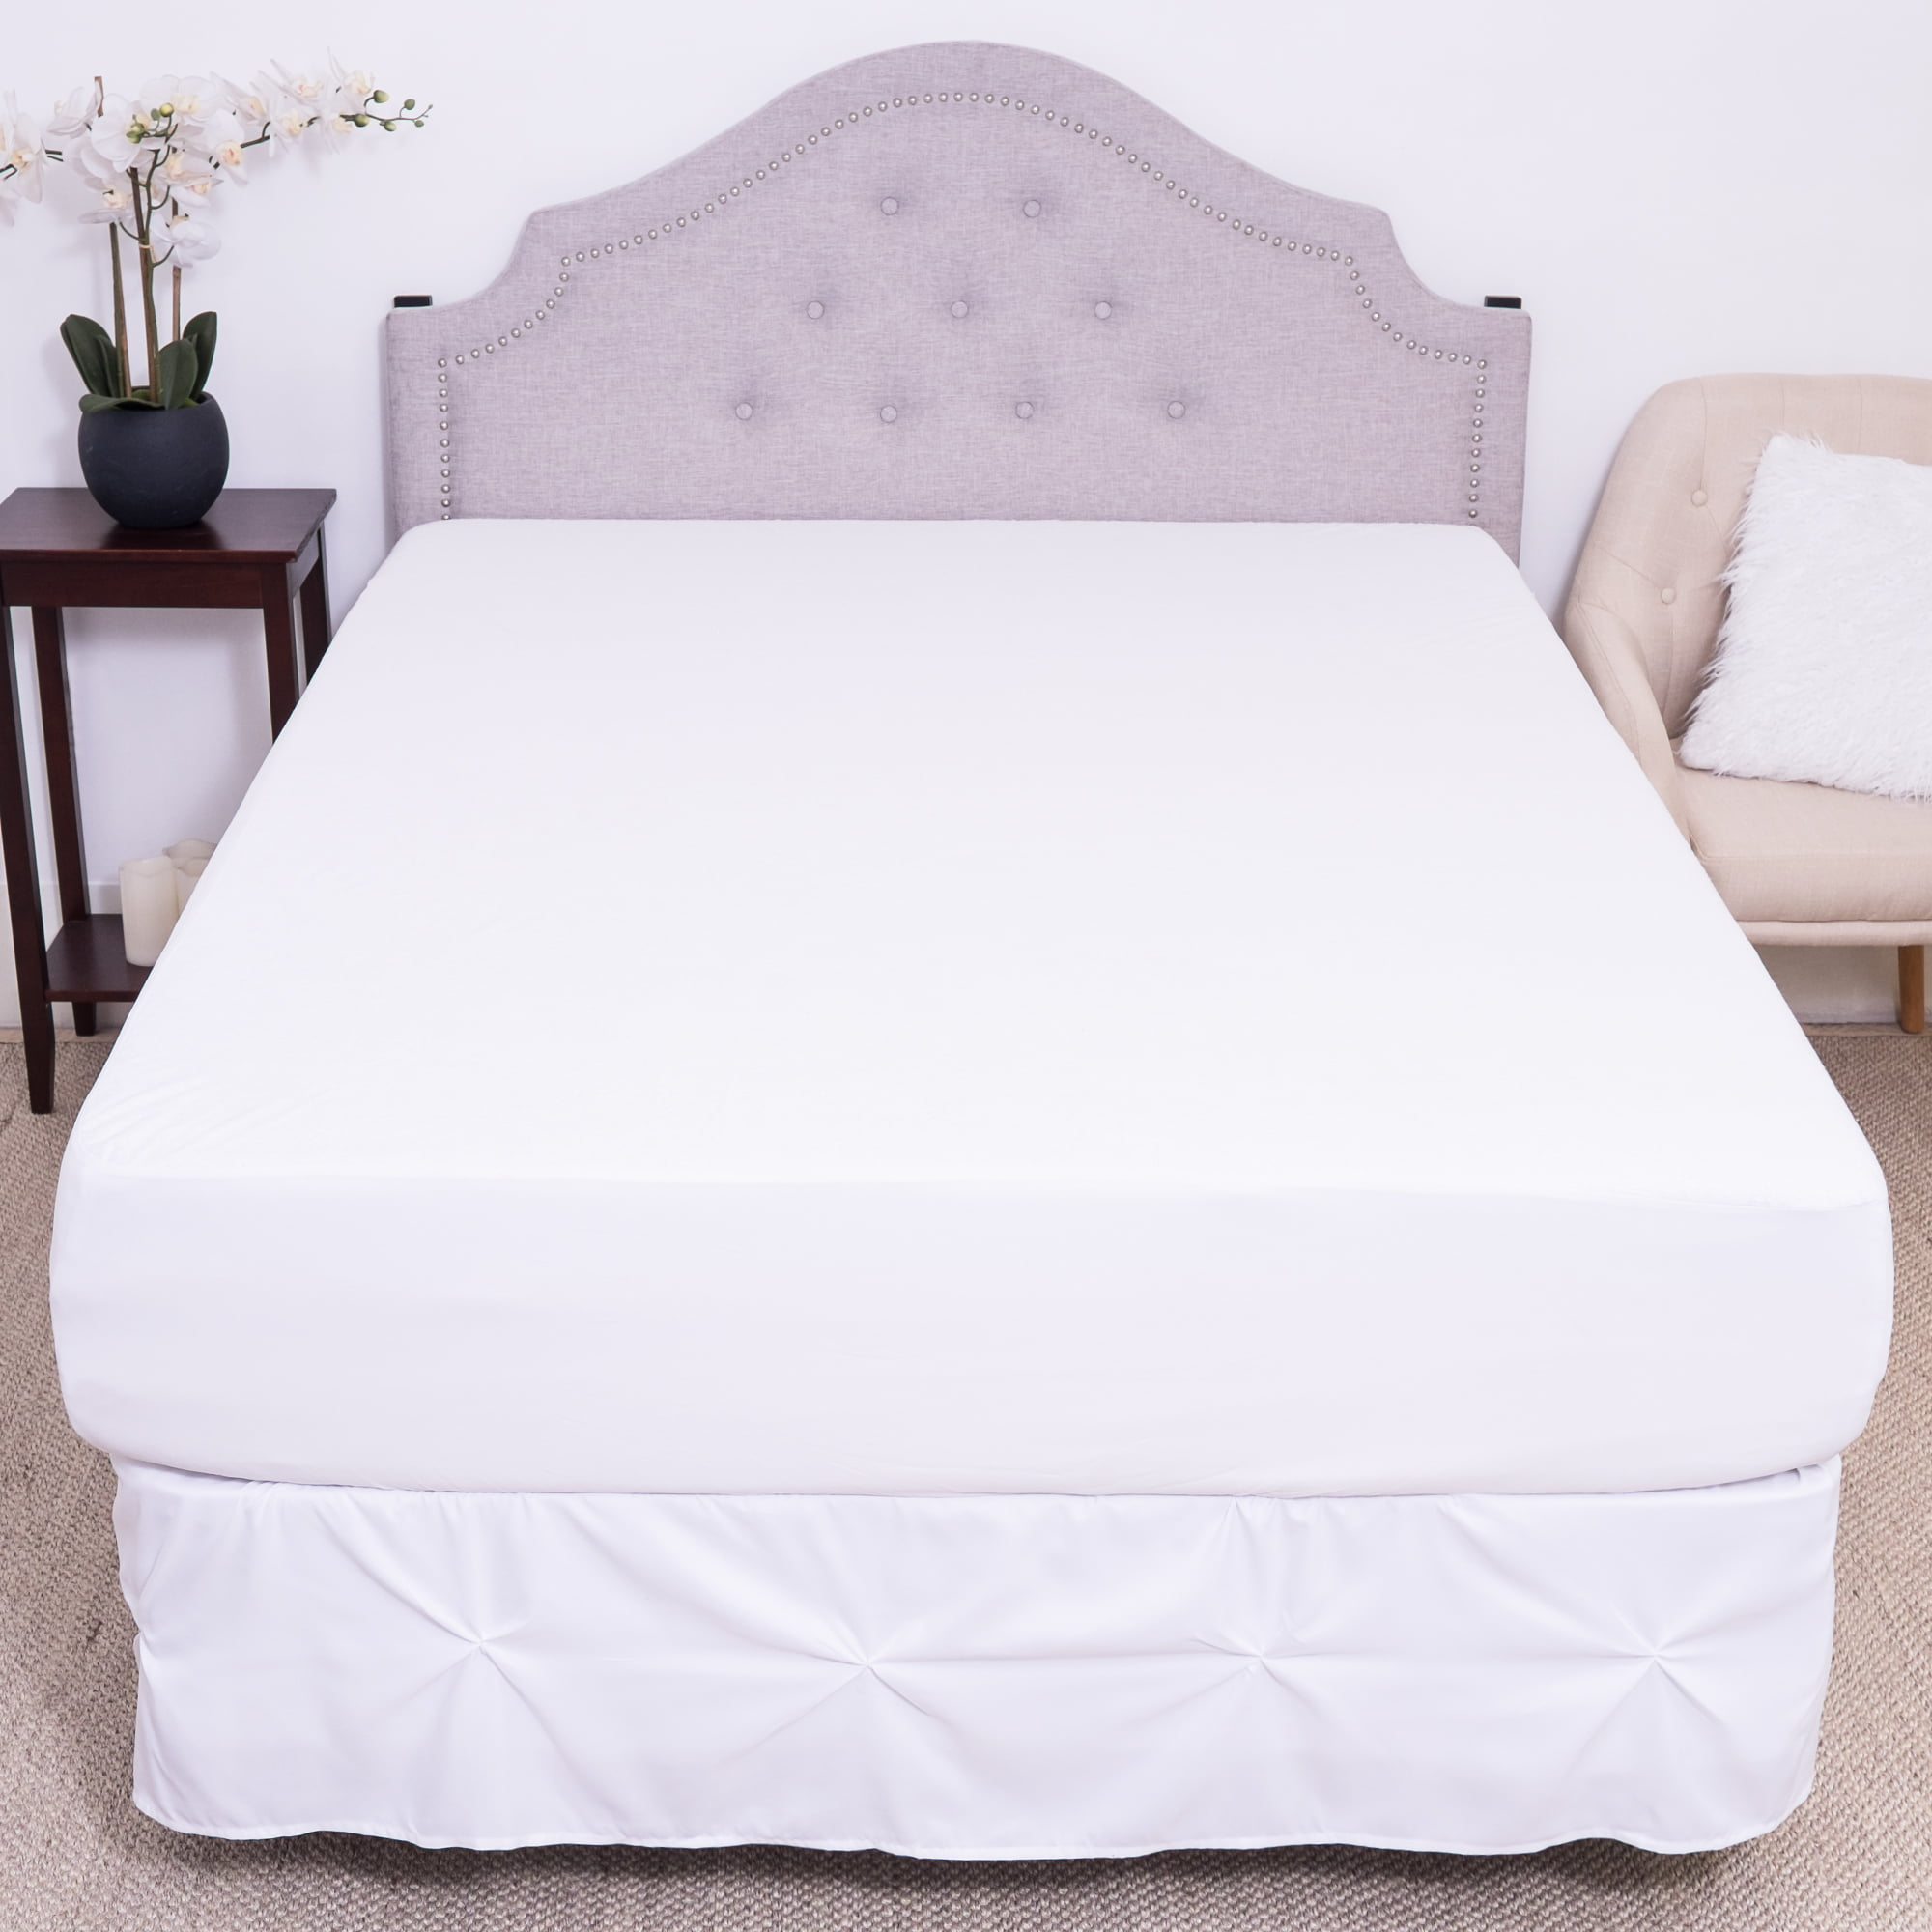 LUXURY BRAND NEW WATERPROOF TERRY TOWELING MATTRESS PROTECTOR BED COVER